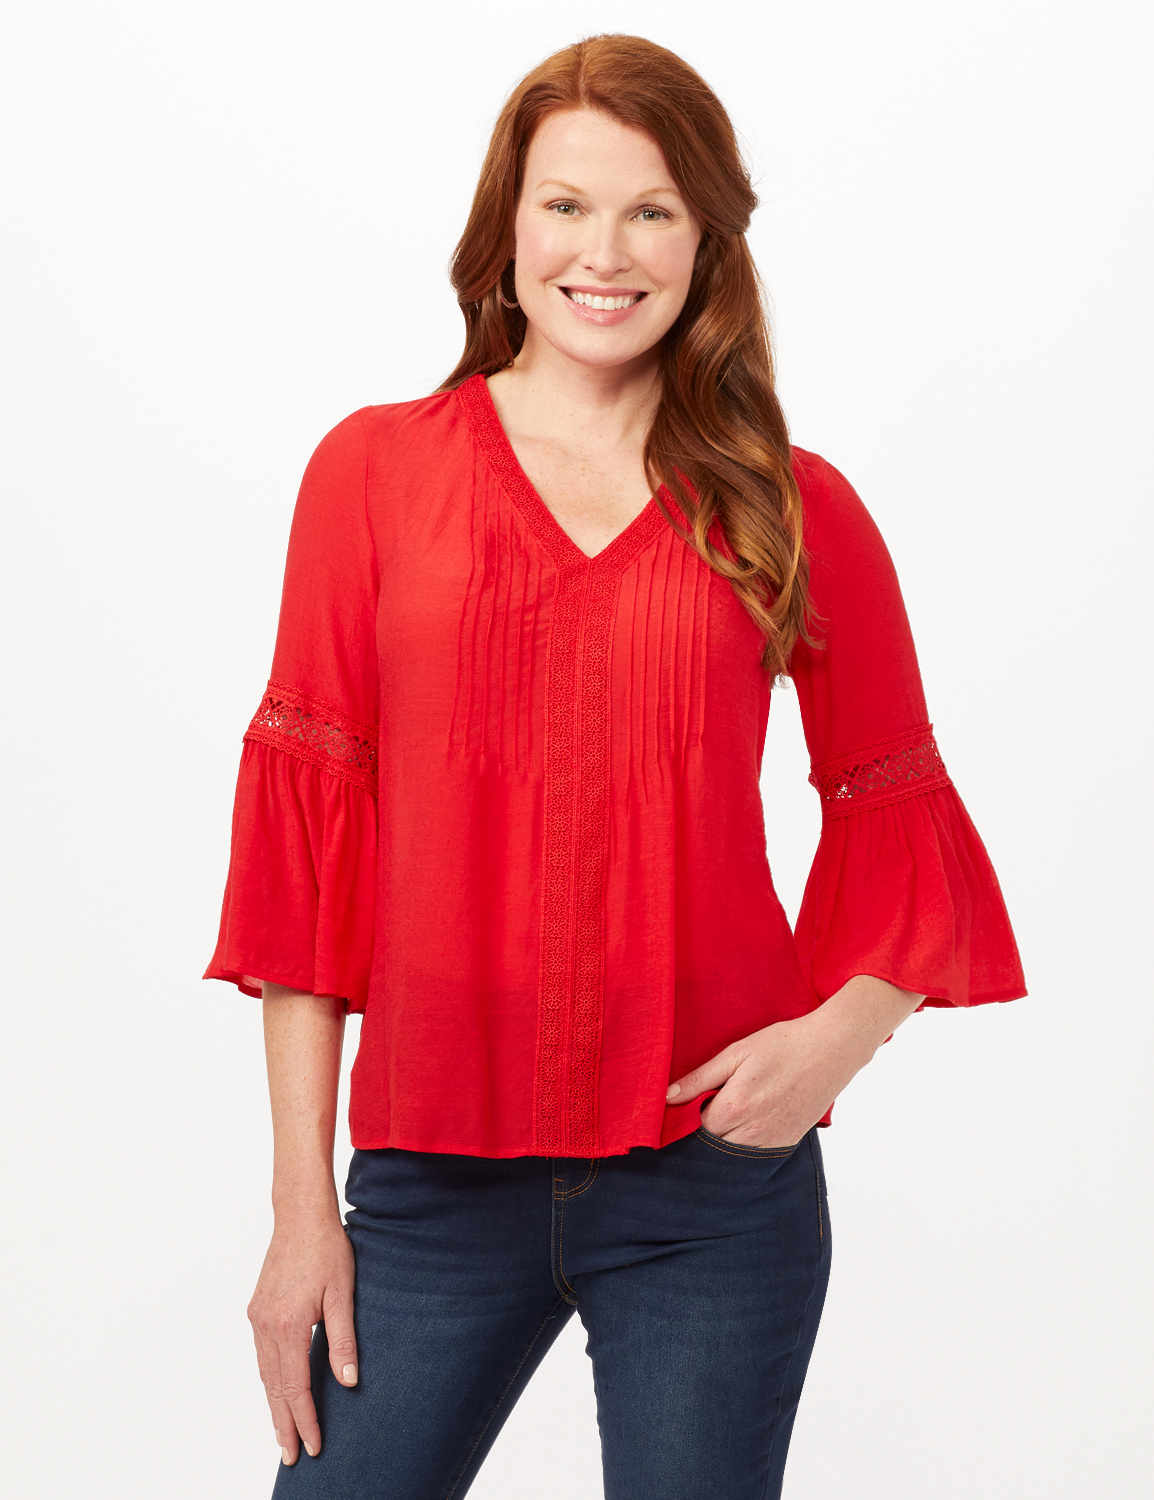 V-Neck Crochet Trim Texture Top -Red - Front